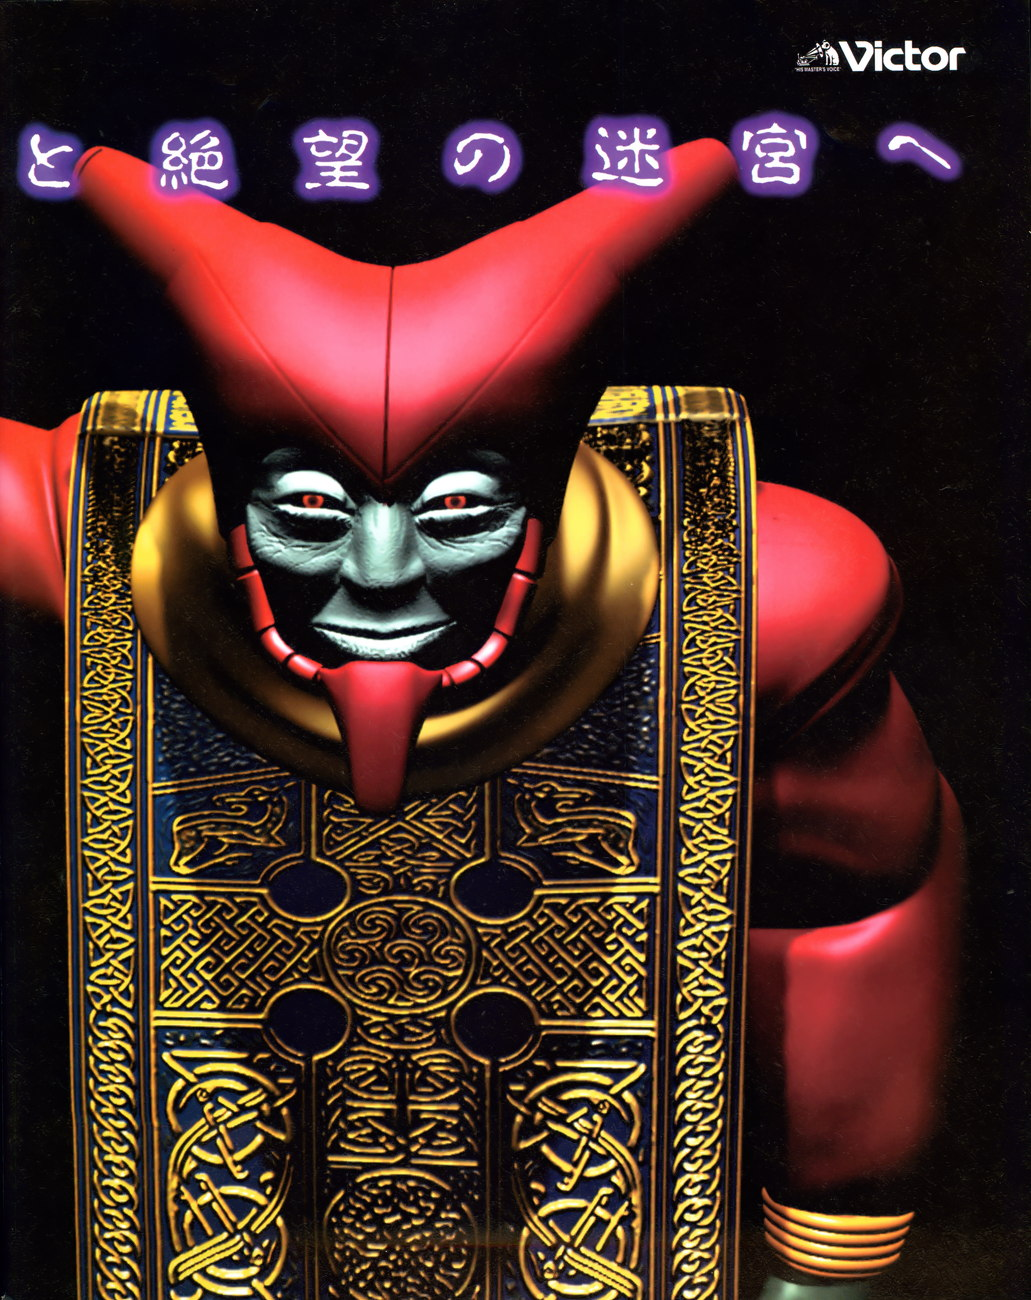 Dungeon Master Nexus Advertisement published in Japanese magazine 'Sega Saturn Magazine', Vol 14 08 May 1998, Page 3